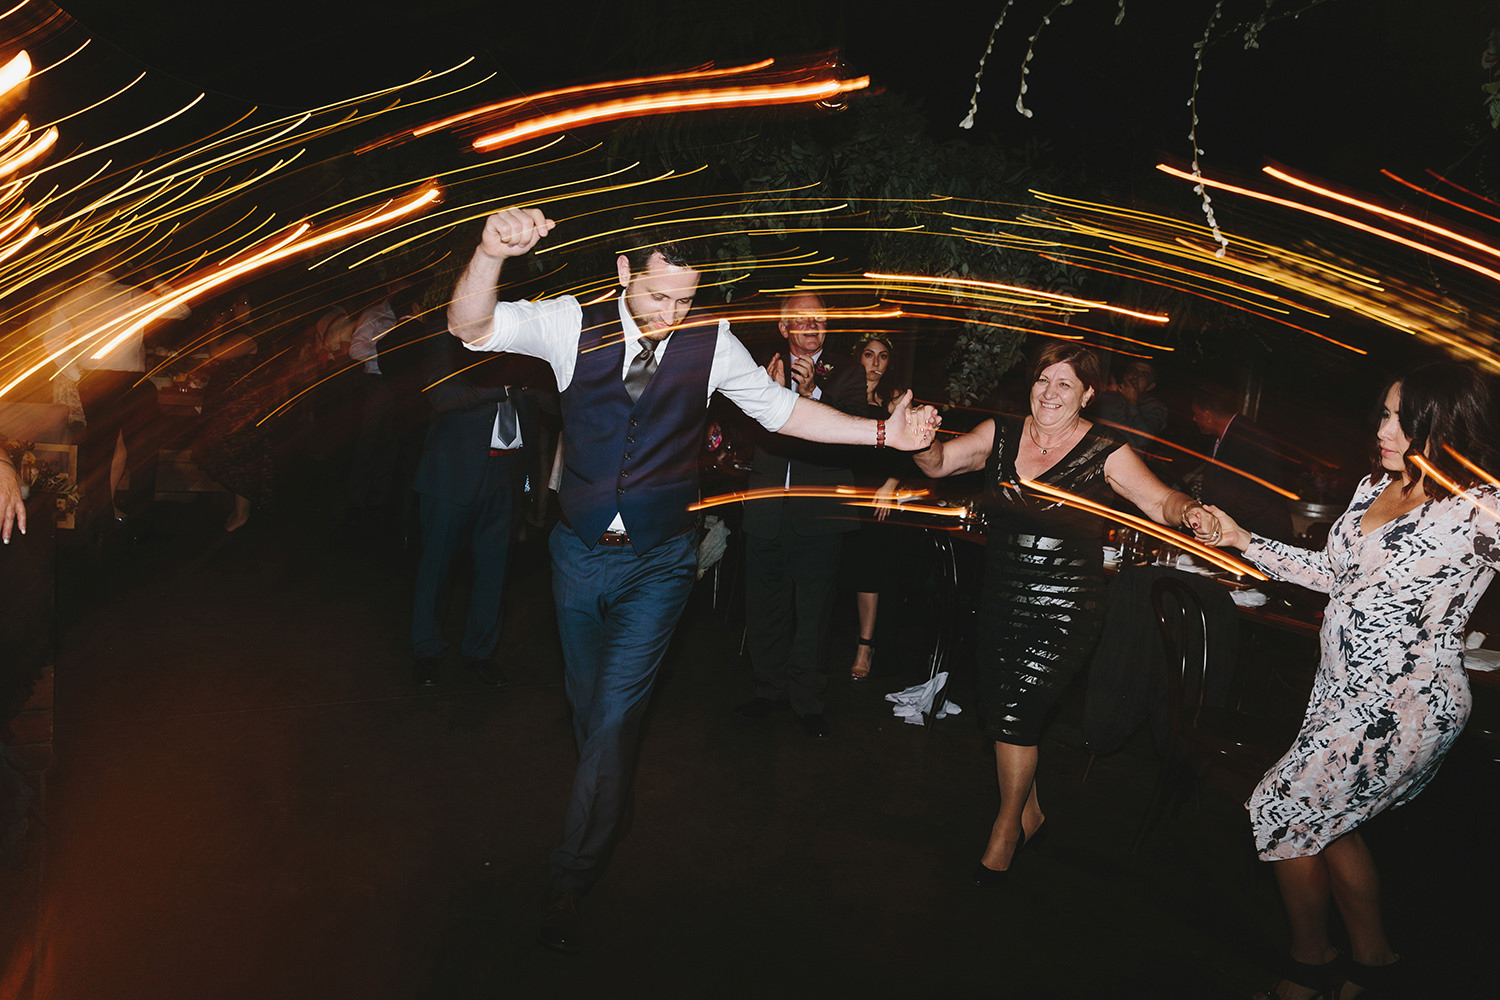 Melbourne_Winery_Wedding_Chris_Merrily185.JPG